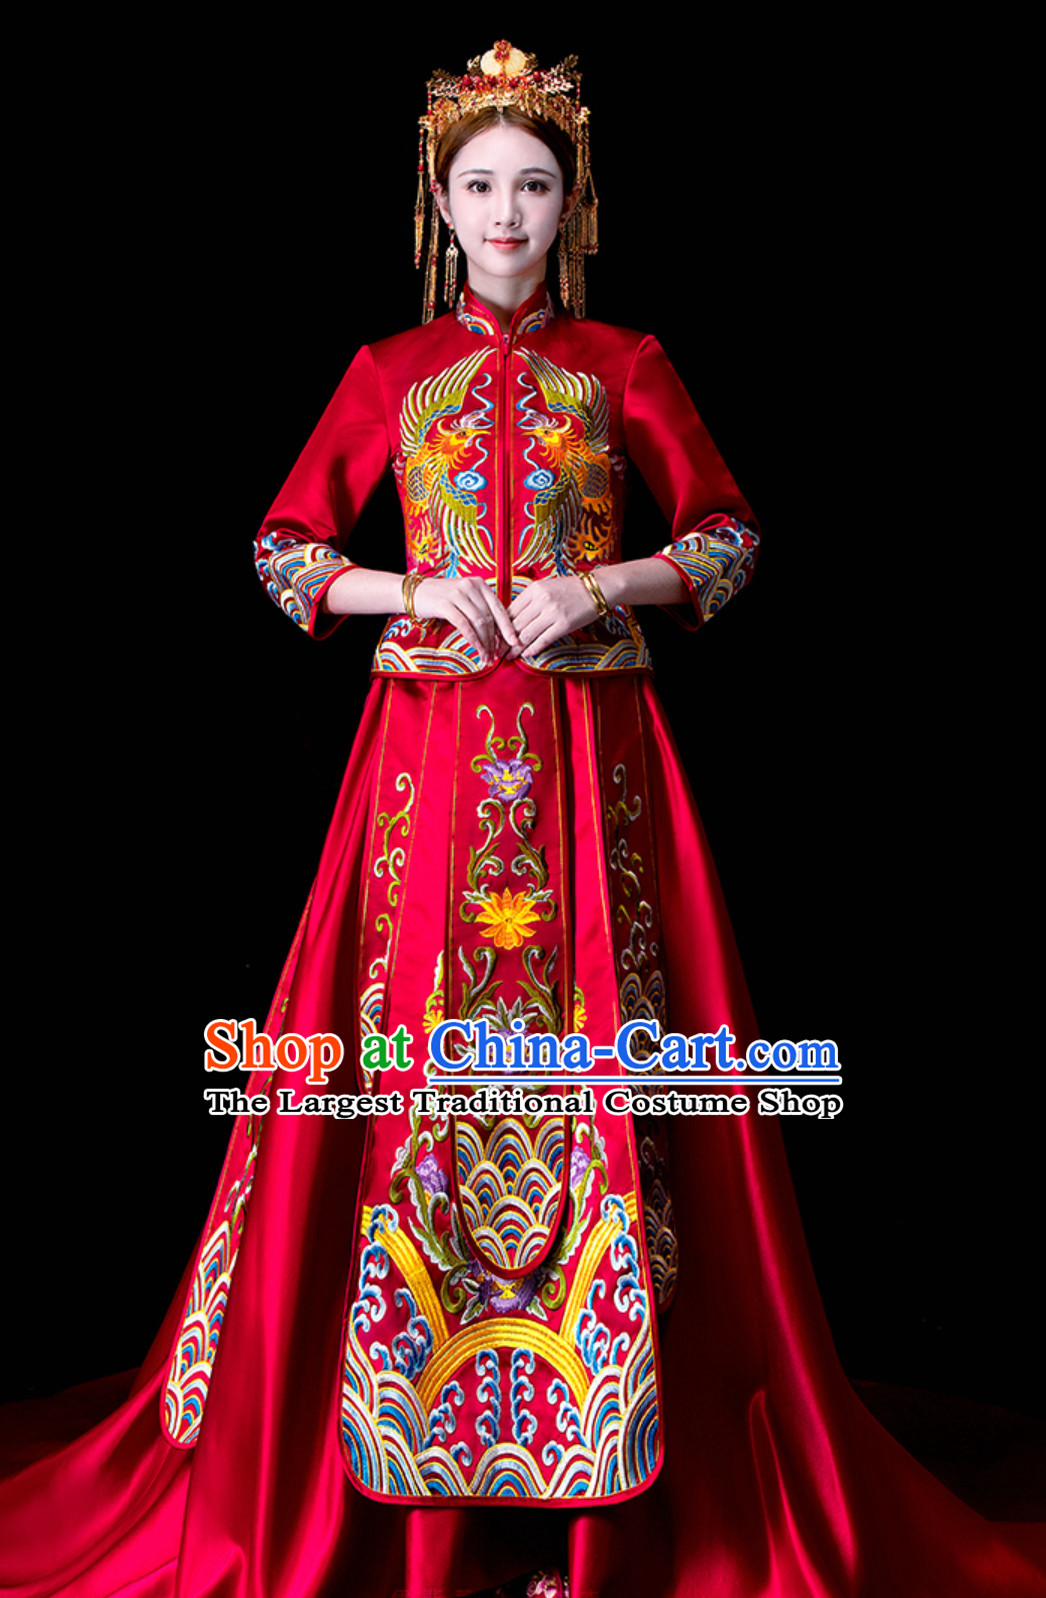 Chinese Traditional Kazak Clothing Folk Dance Ethnic Dress for Women